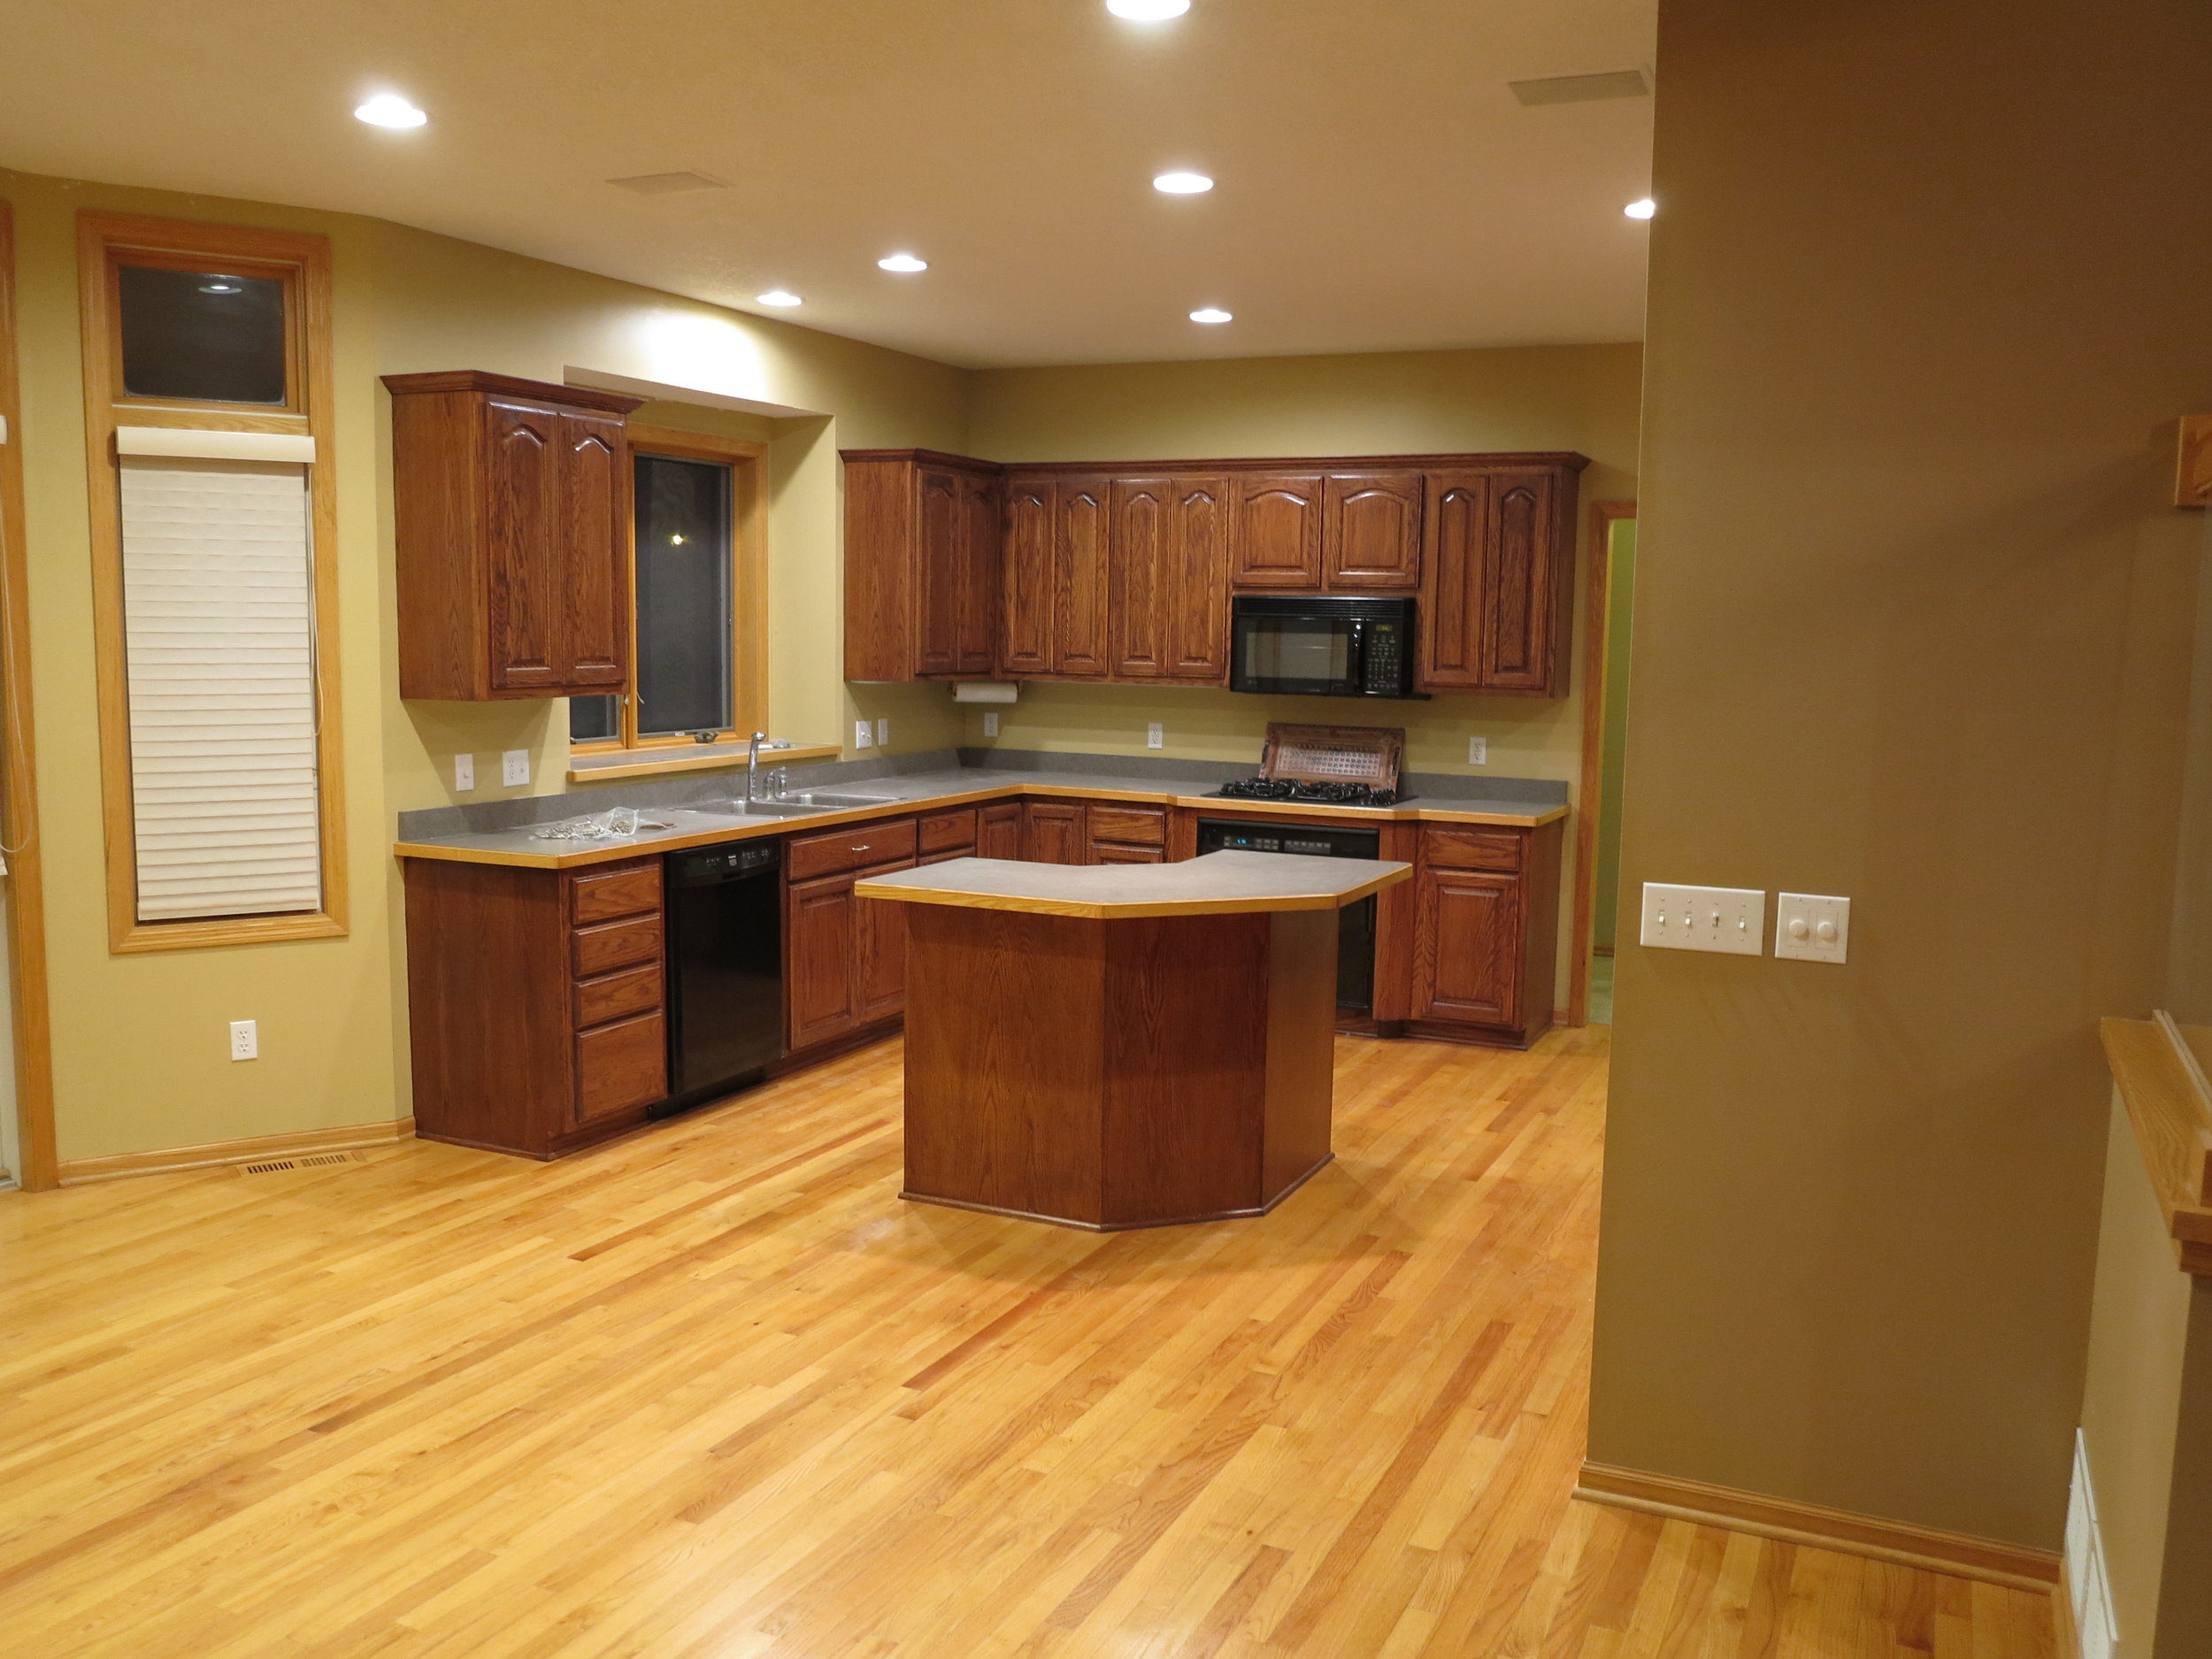 Kitchen Remodel Projects in St. Paul